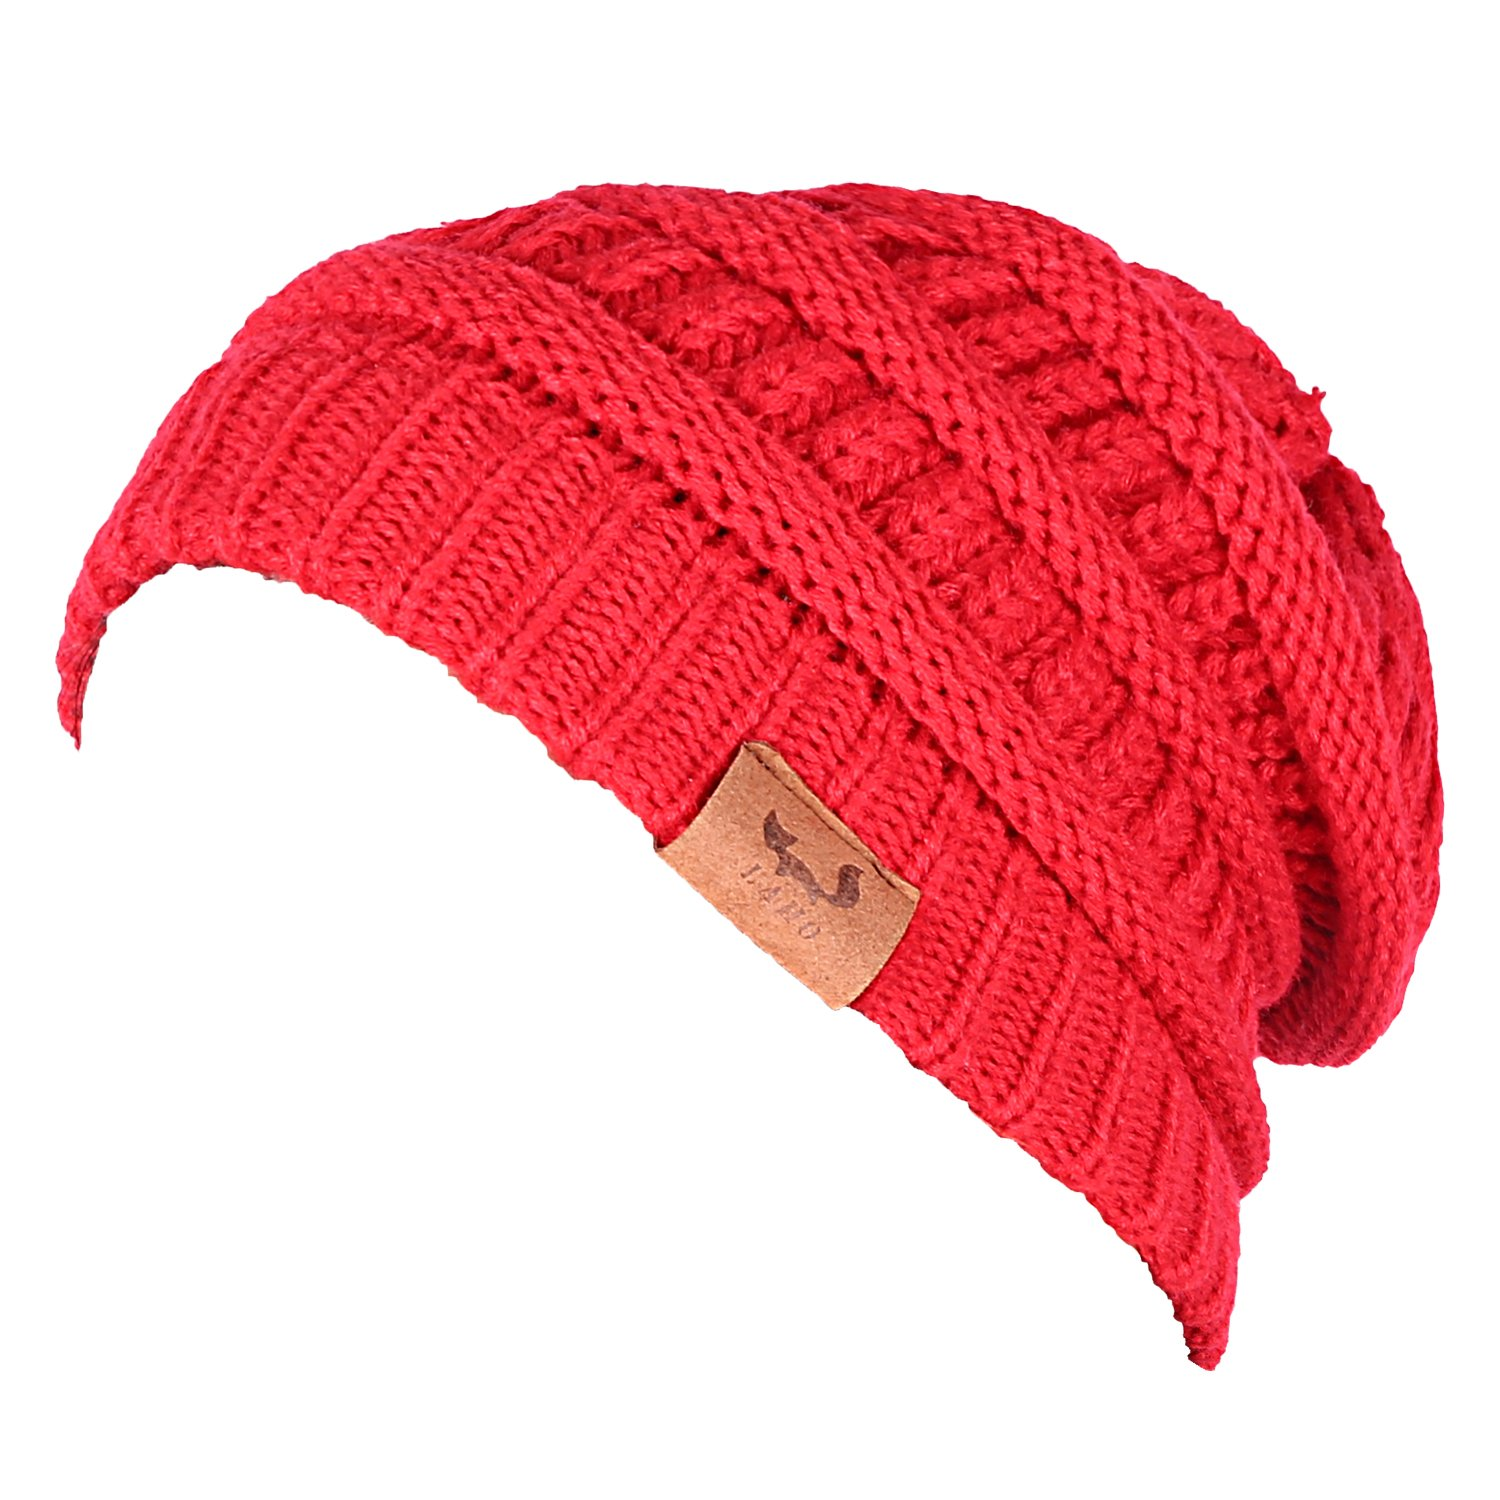 1db7921081e84 Laho Unisex Trendy Warm Chunky Soft Stretch Cable Knit Hat Slouchy Skully  Beanie Cap